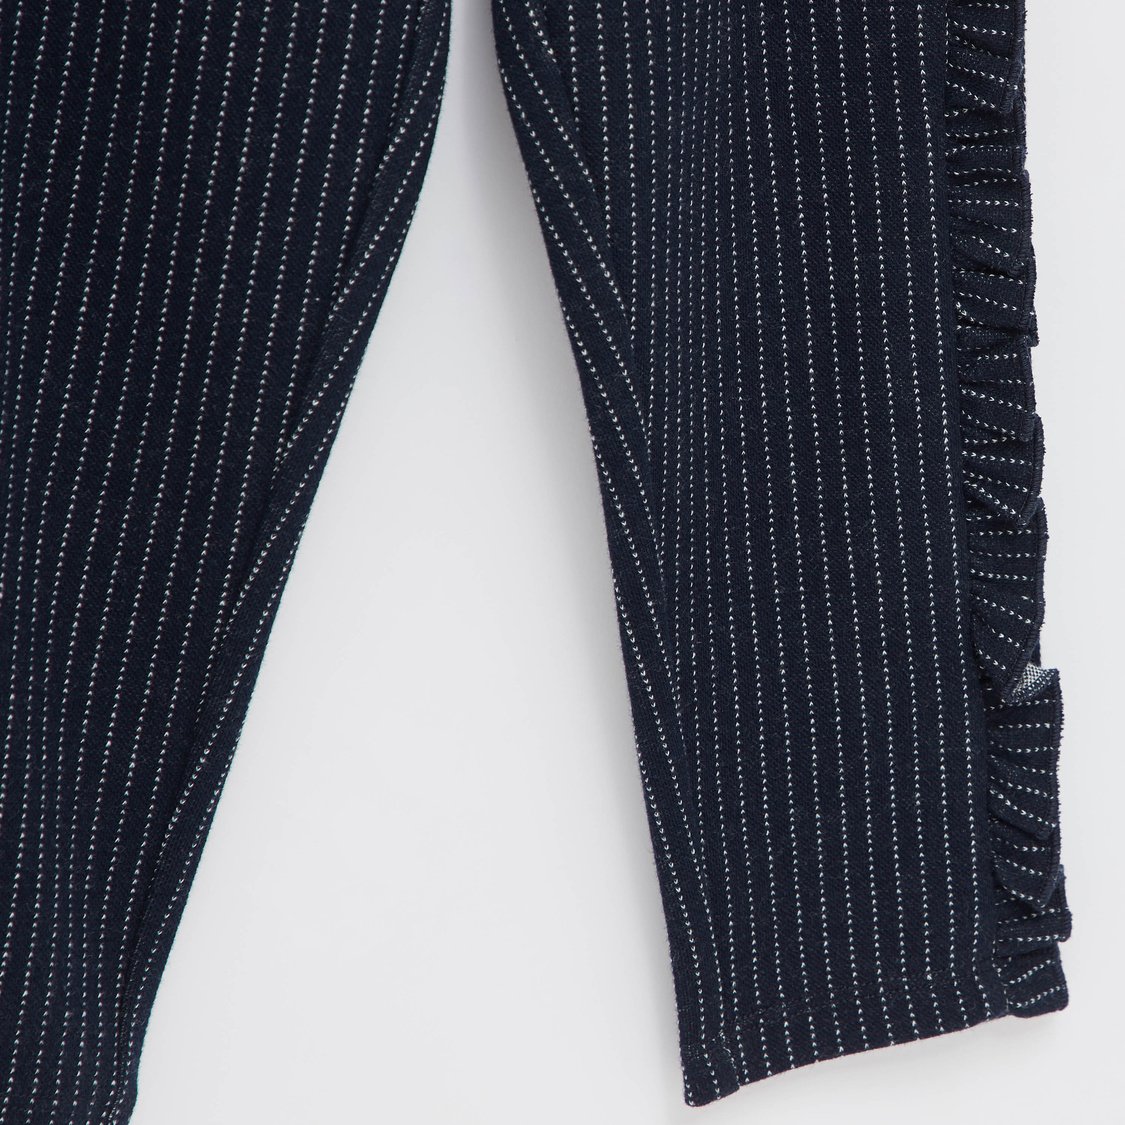 Striped Full Length Pants with Elasticated Waistband and Ruffle Detail